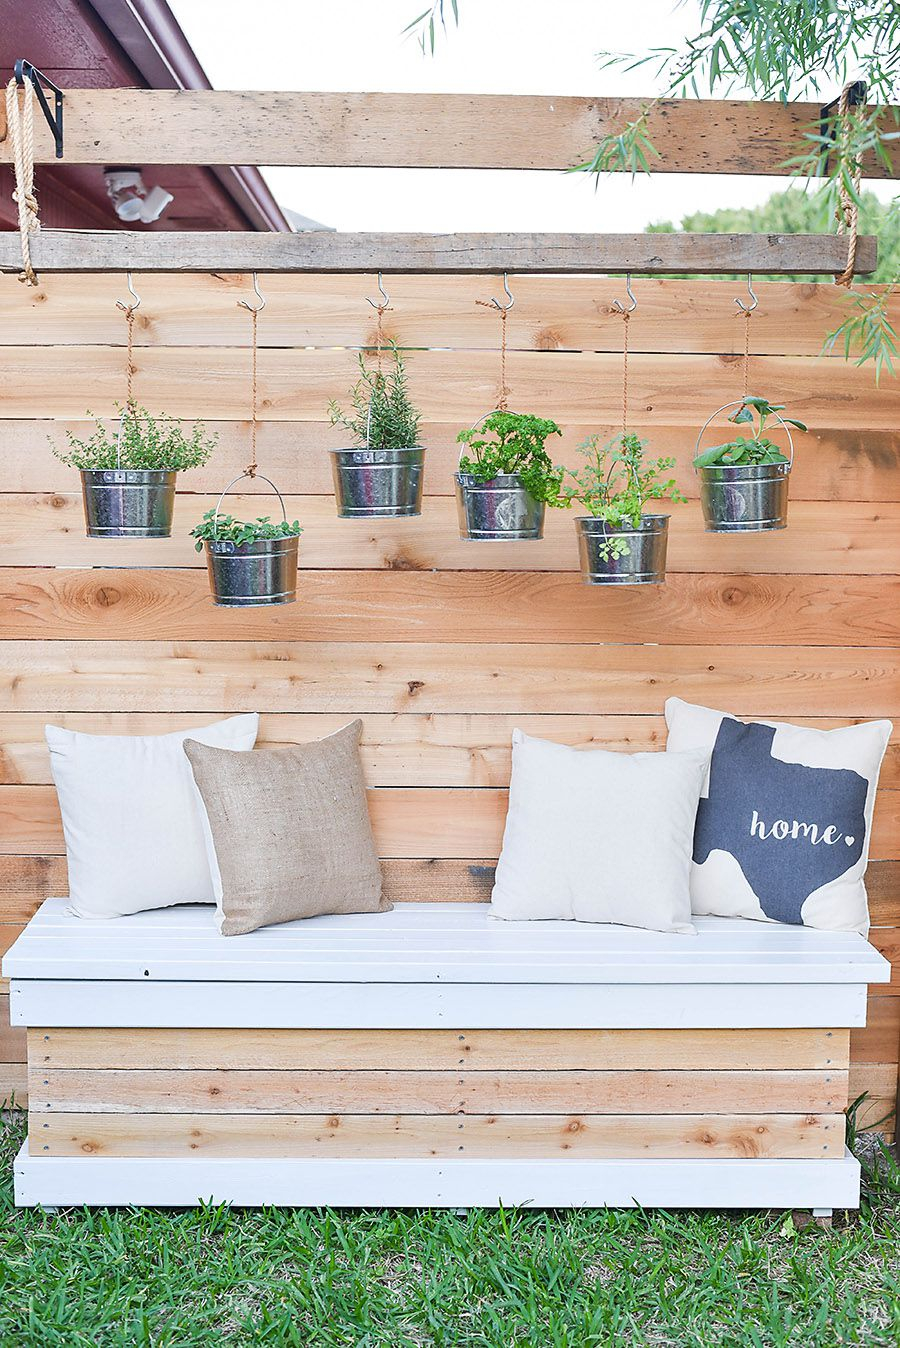 29 Small Backyard Ideas Beautiful Landscaping Designs For Tiny Yards in Small City Backyard Ideas